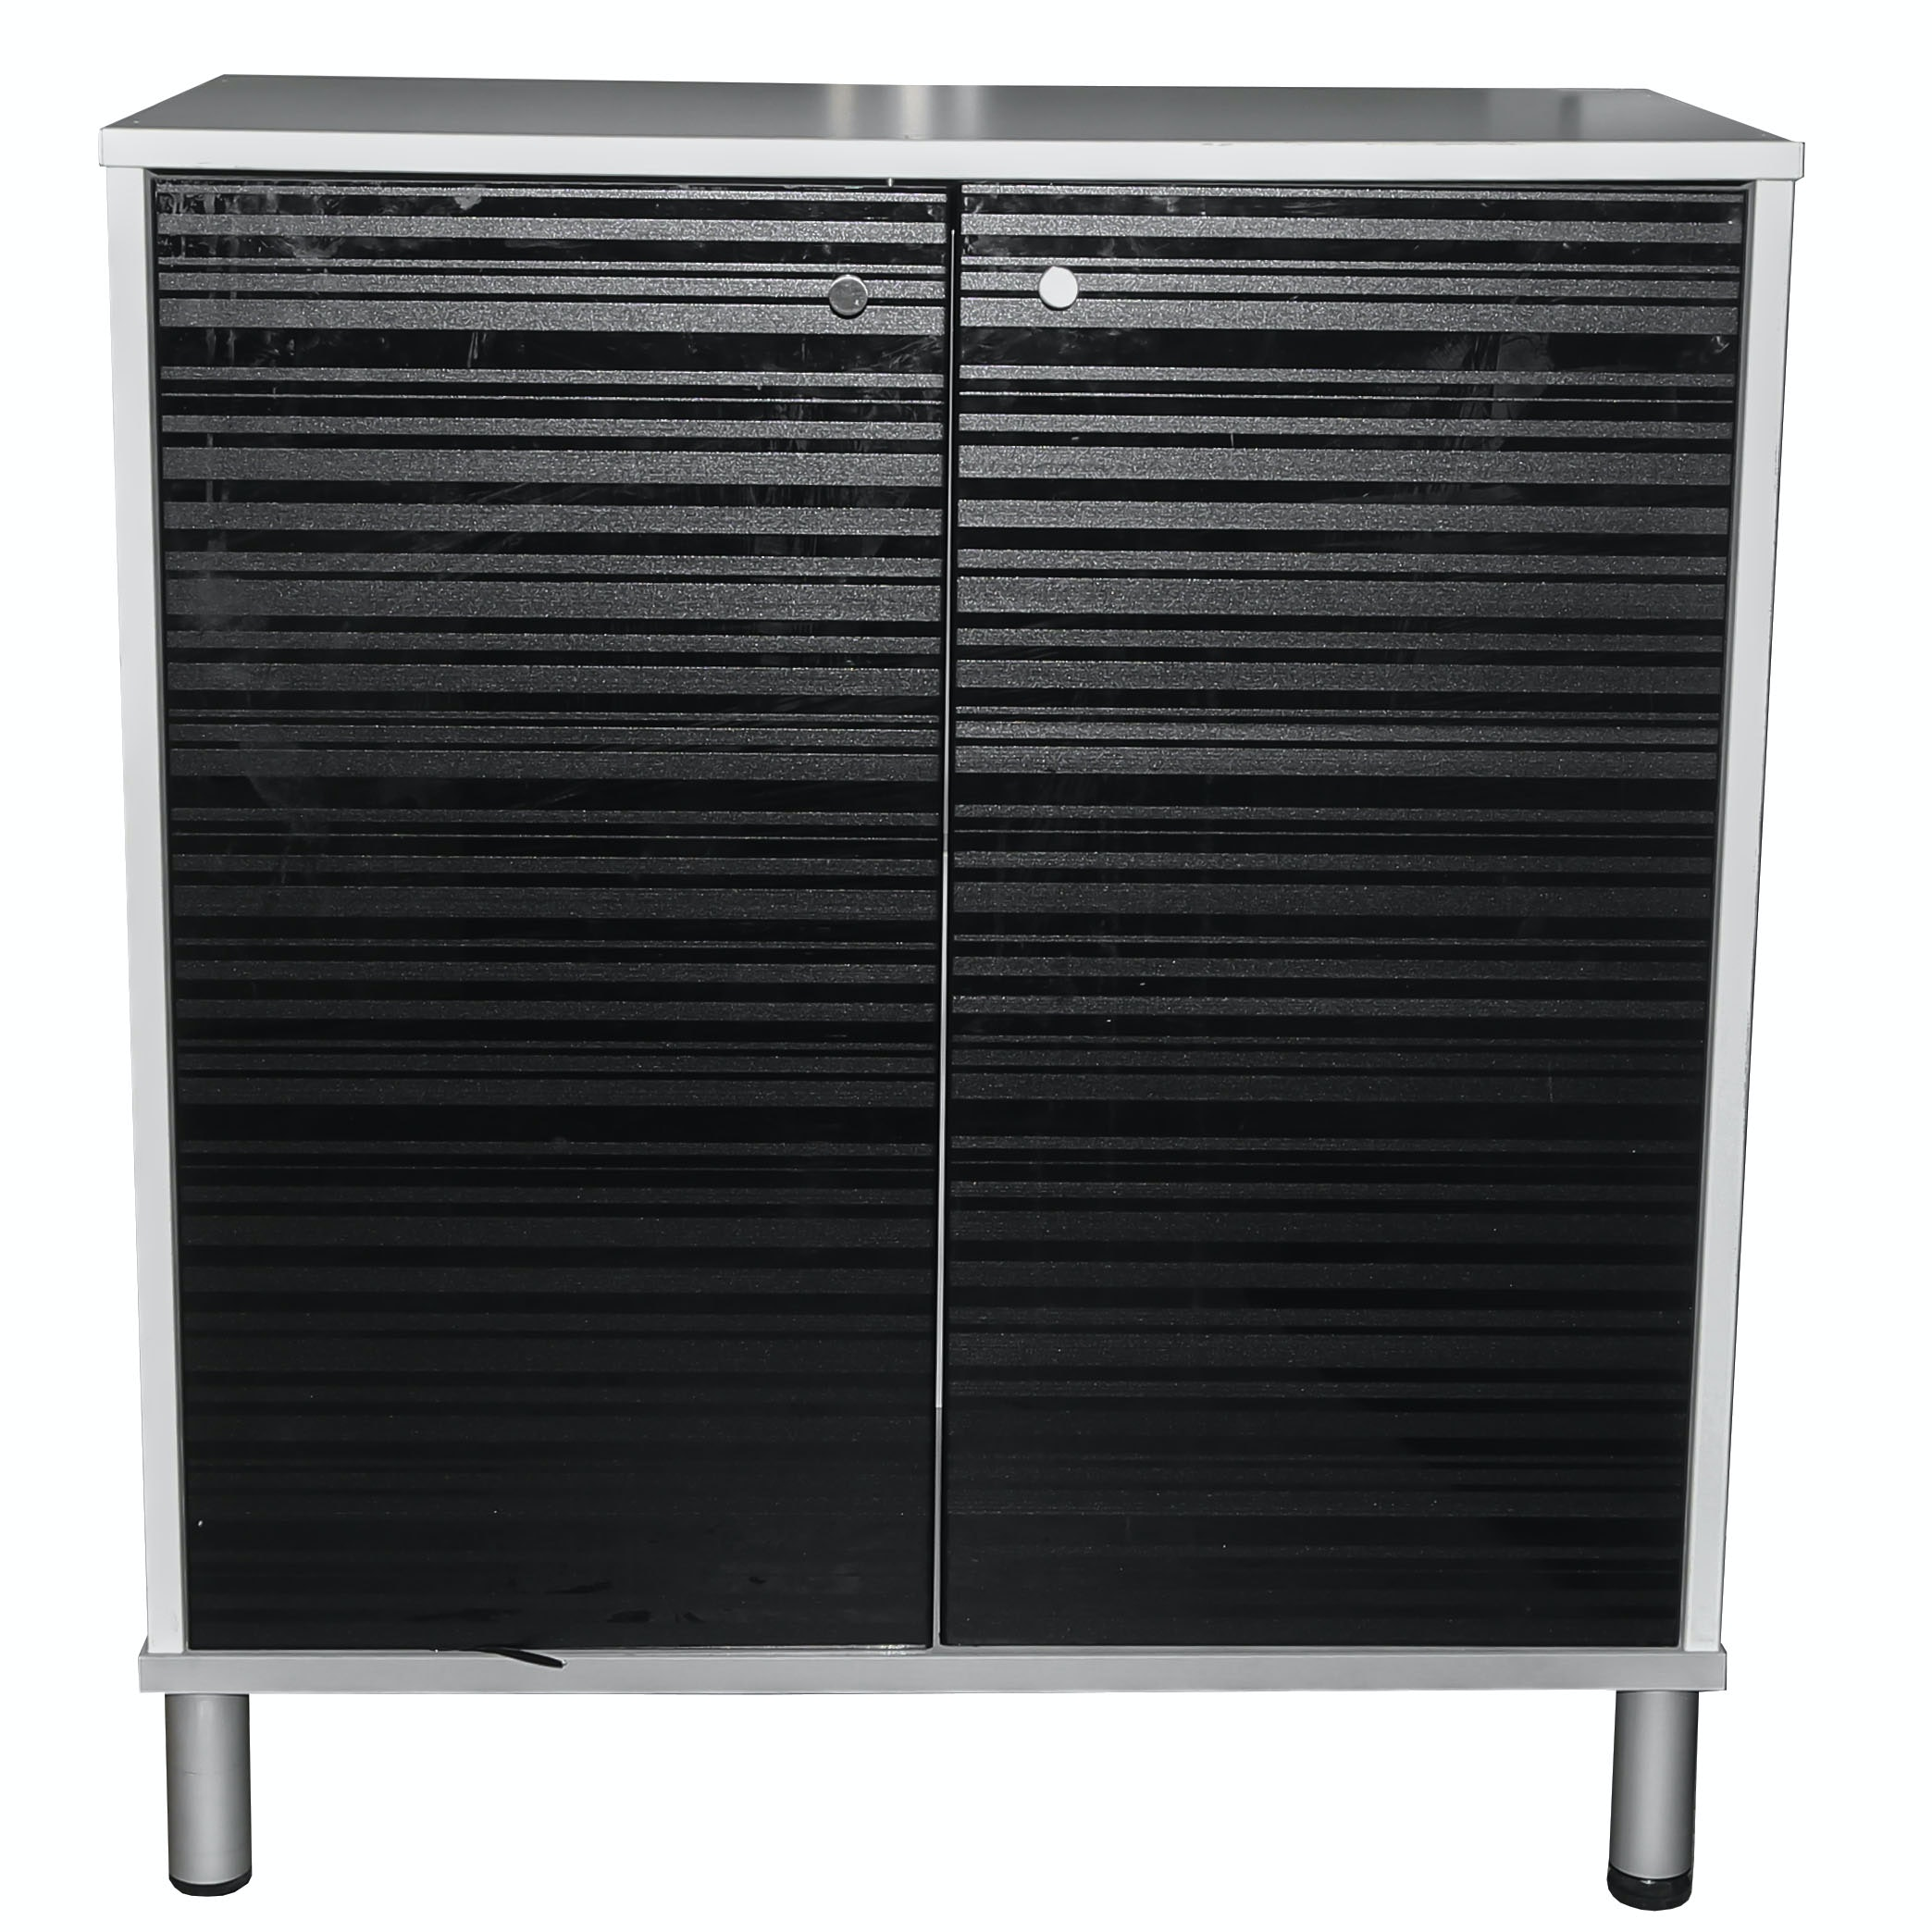 IKEA Effektiv White and Black Laminate Storage Cabinet